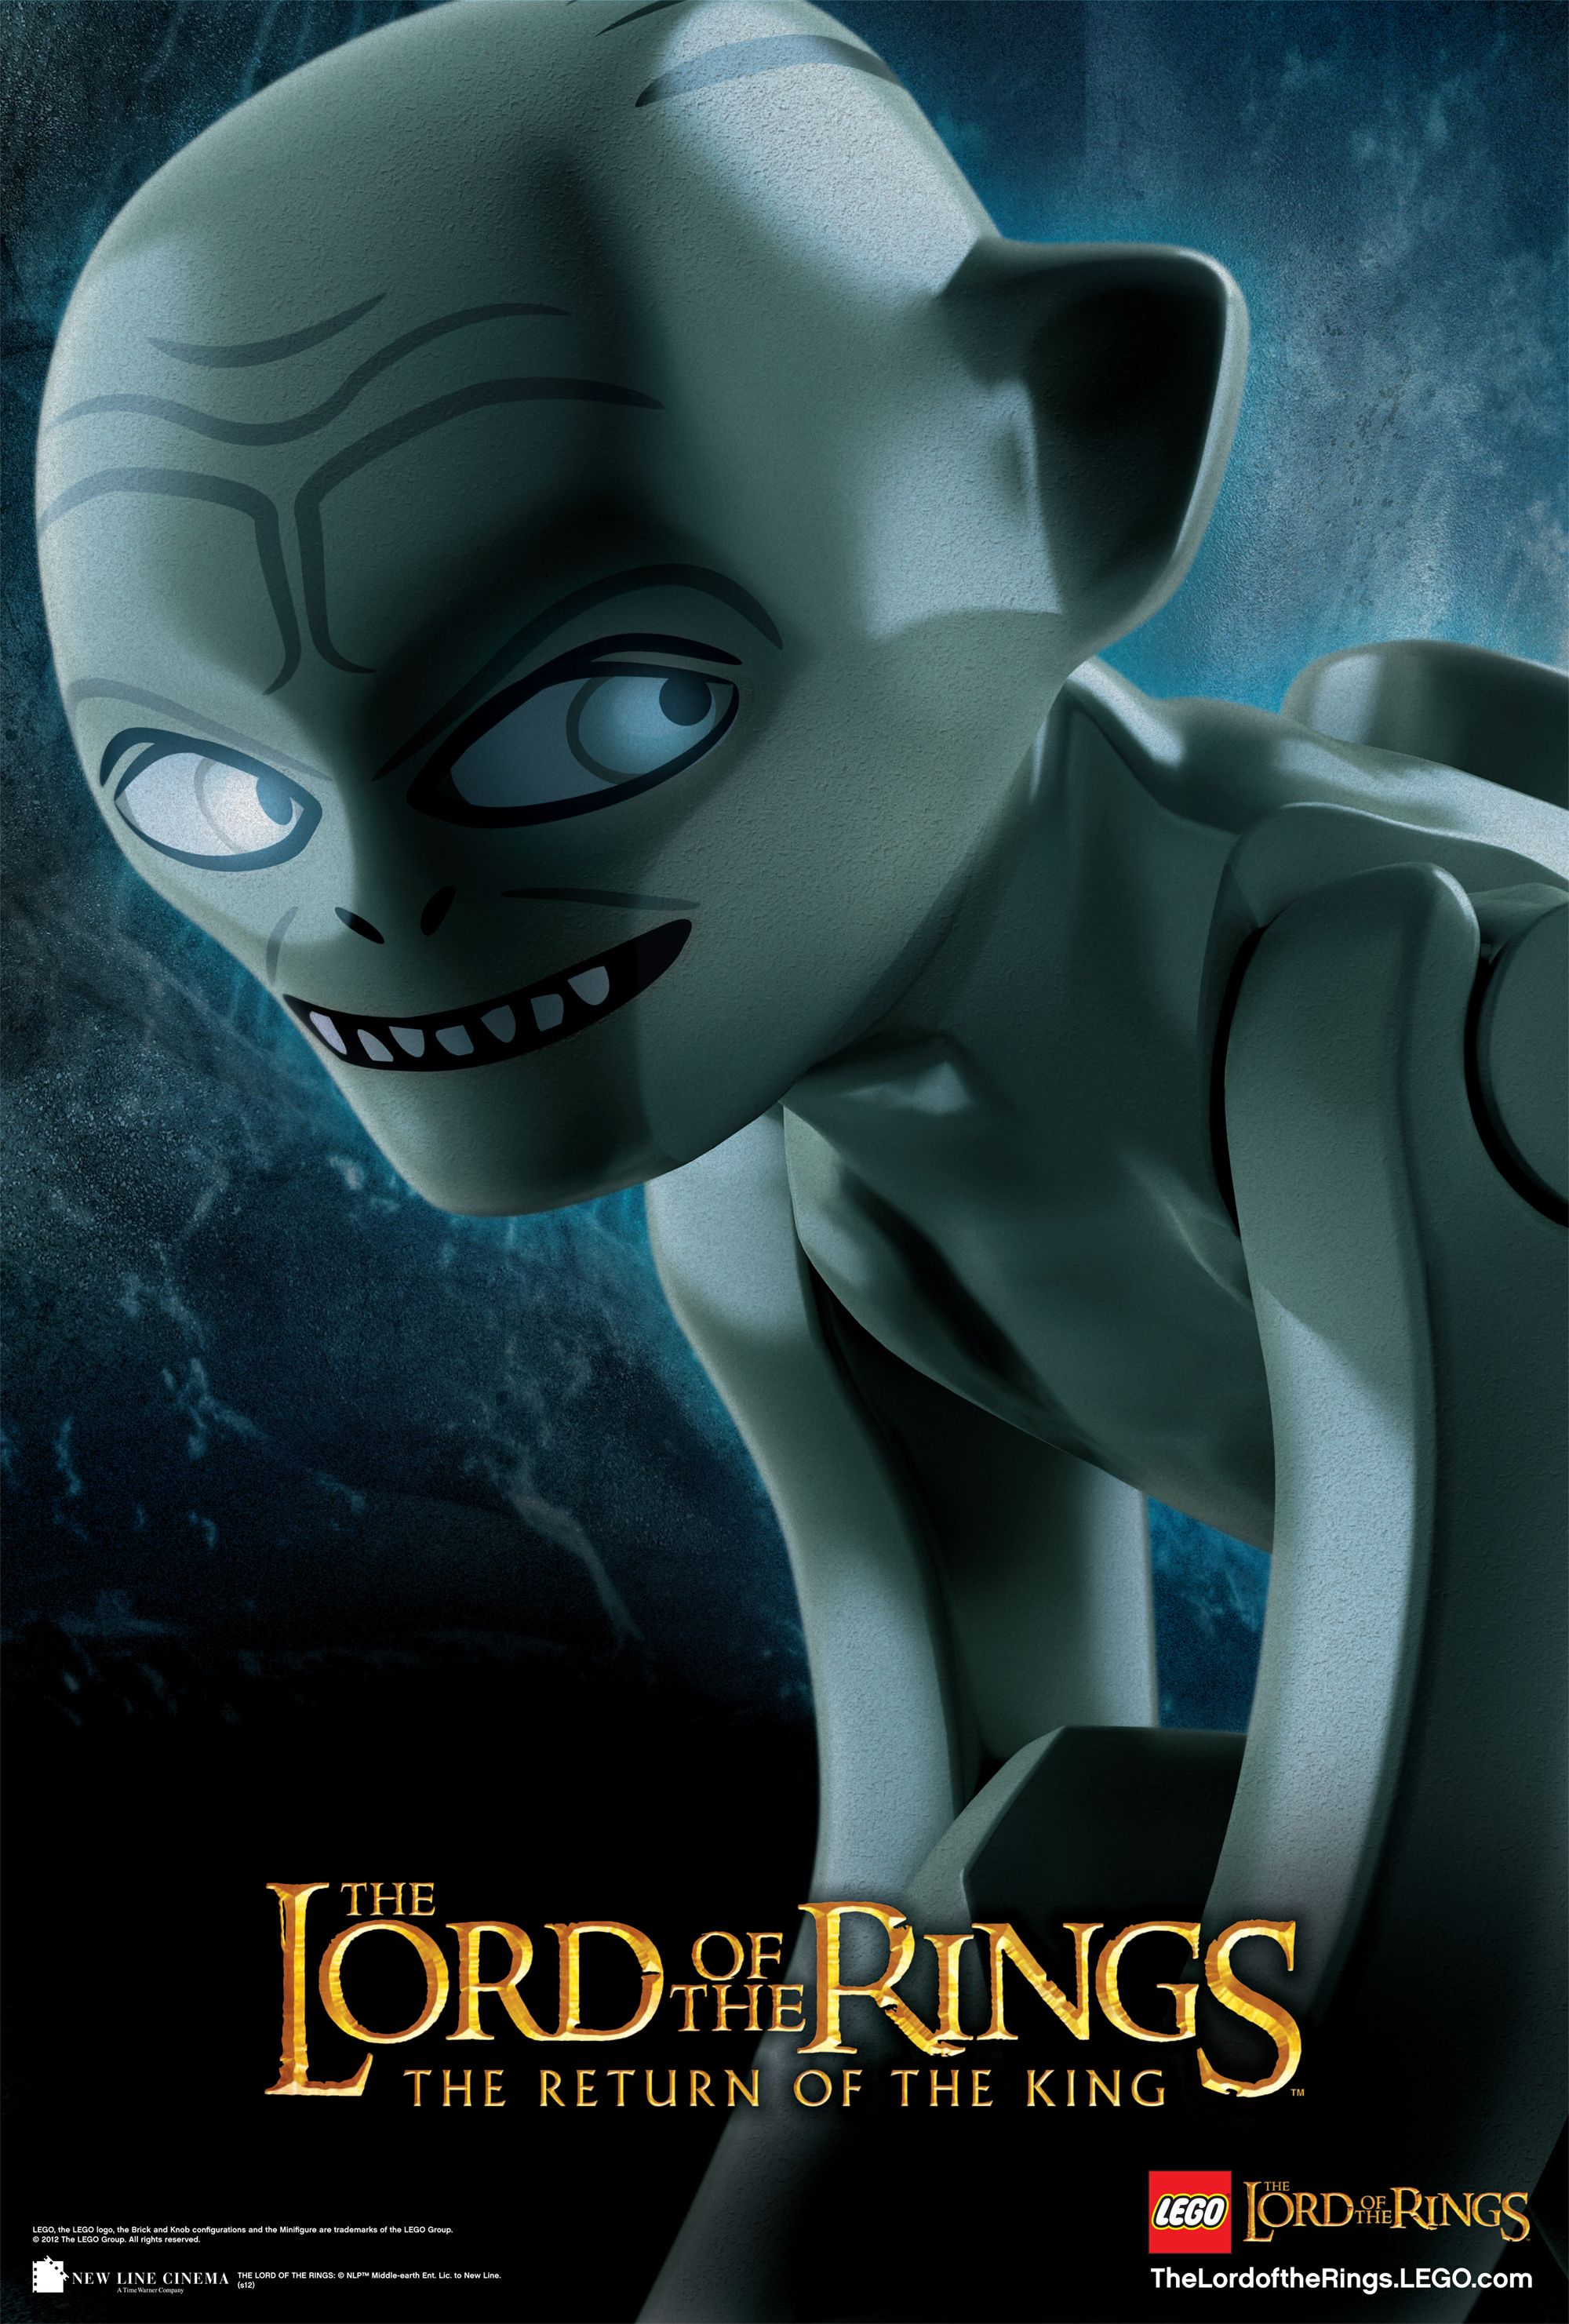 lego lord of the rings character images and gollum poster collider